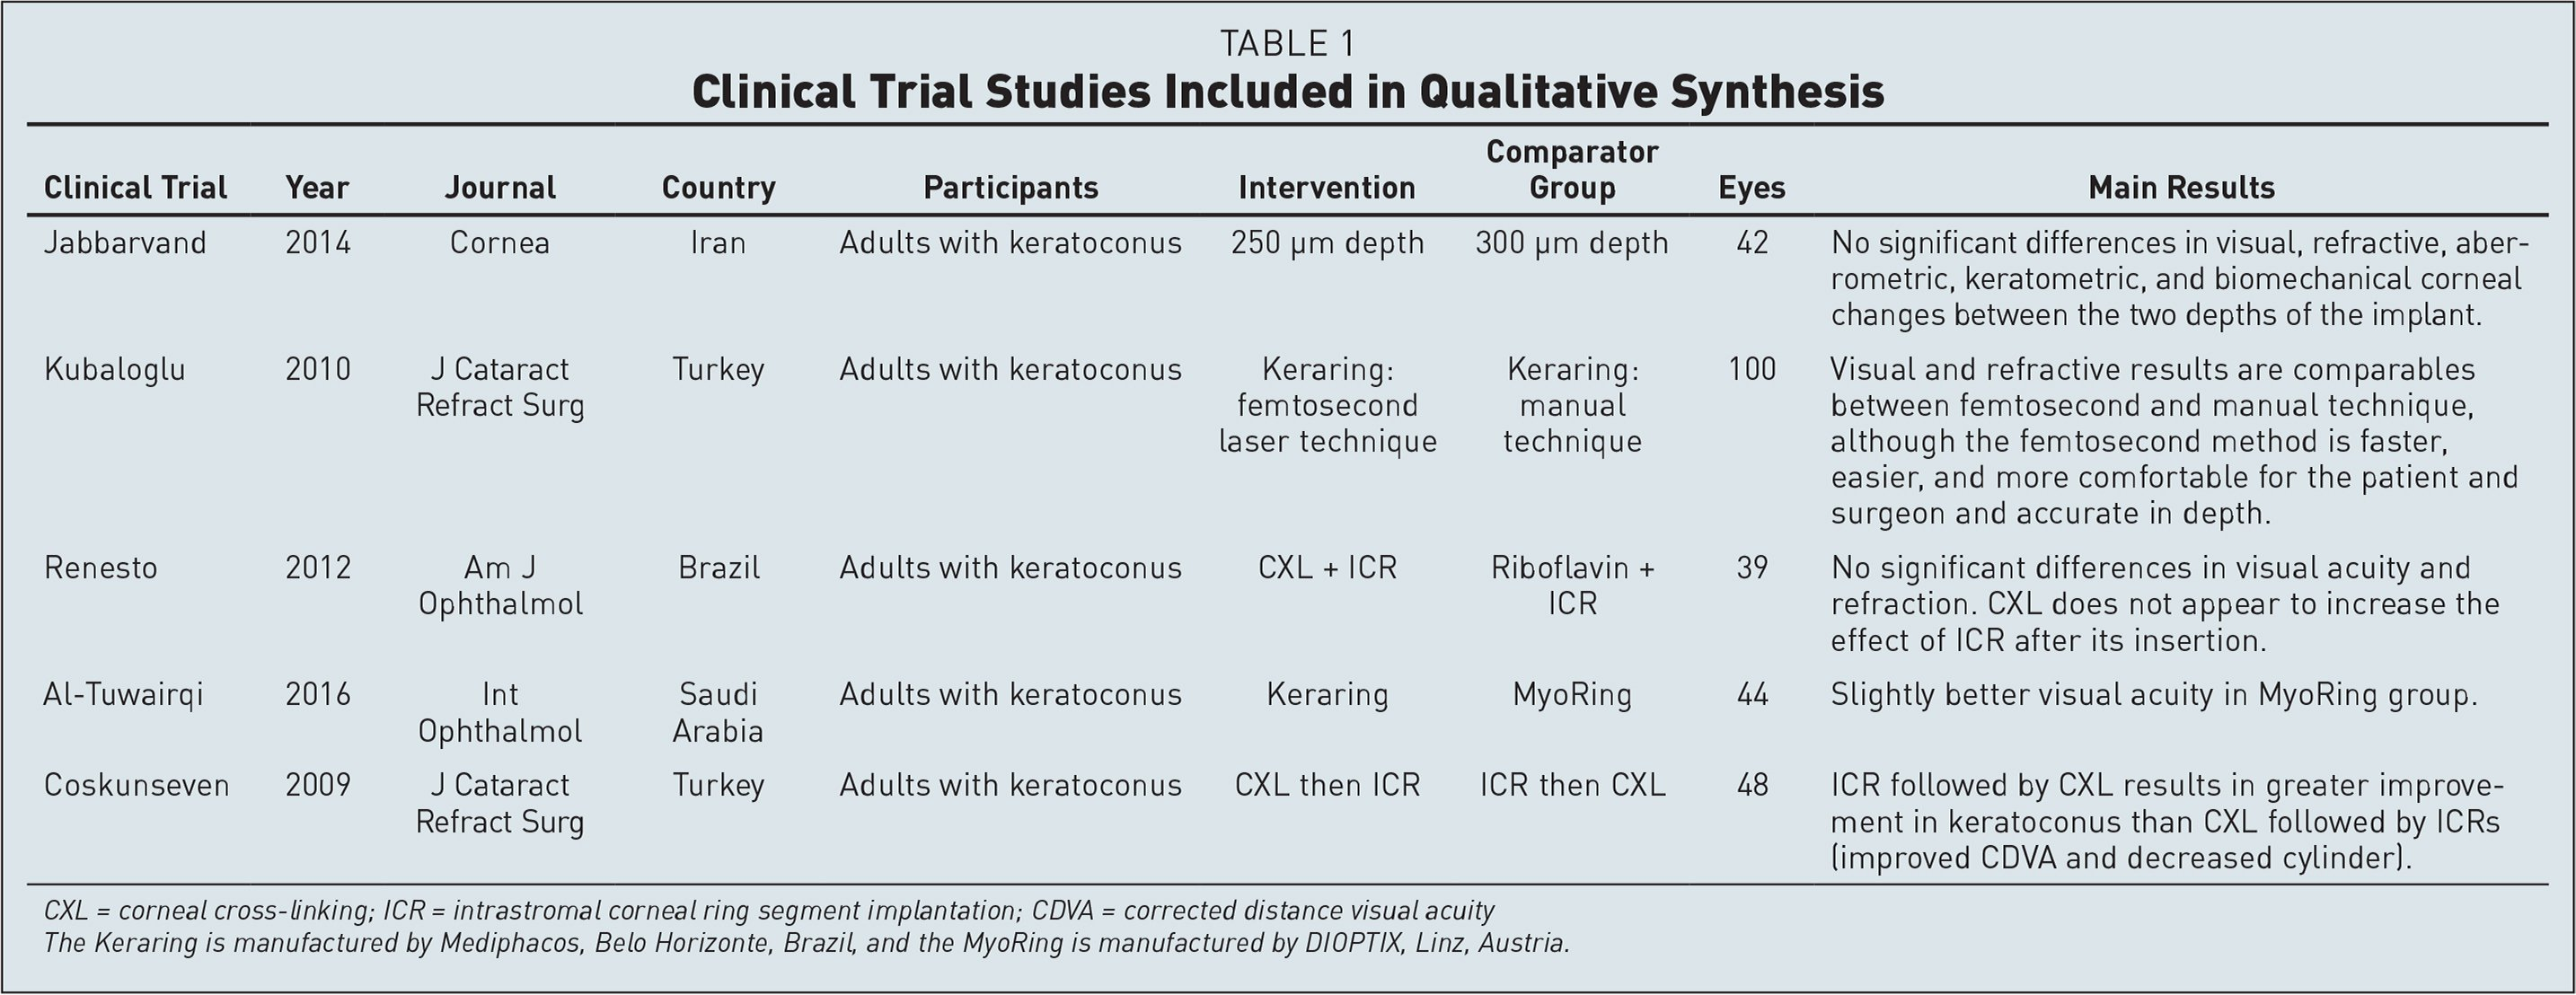 Clinical Trial Studies Included in Qualitative Synthesis